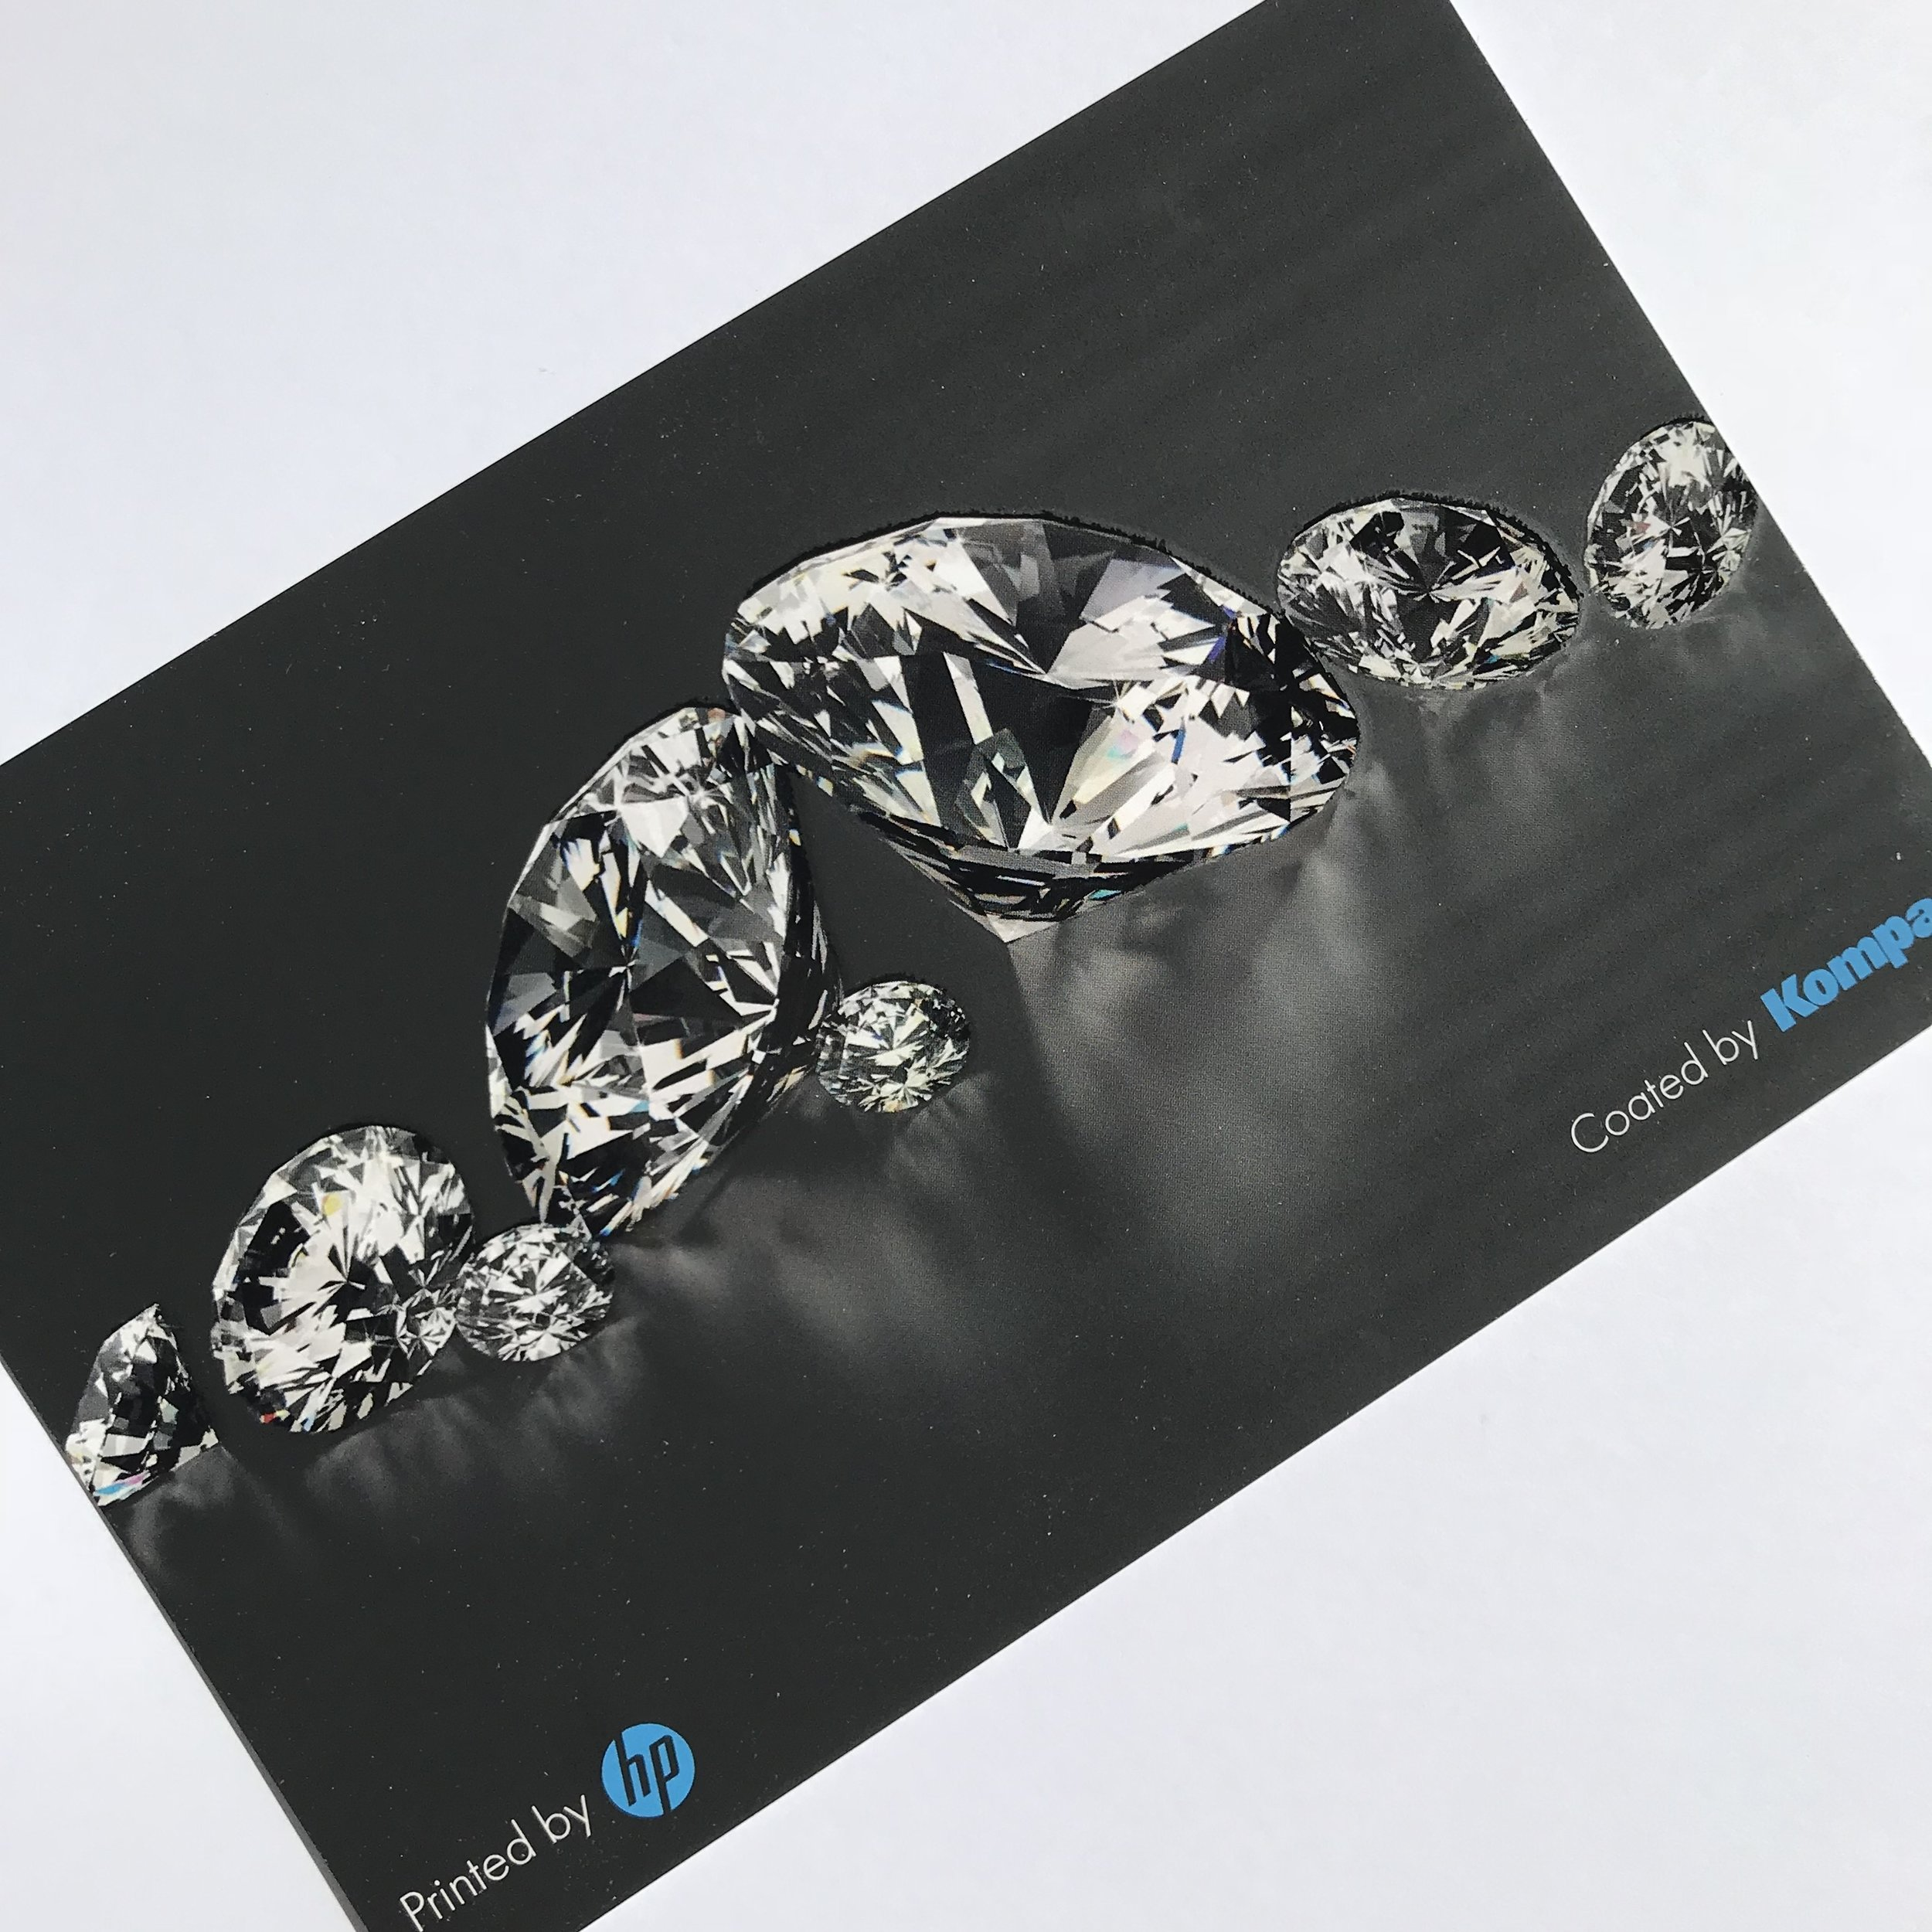 Spot Gloss Coating Sample - Printed on an HP Indigo and coated using the Kompac Kwik Finish 32